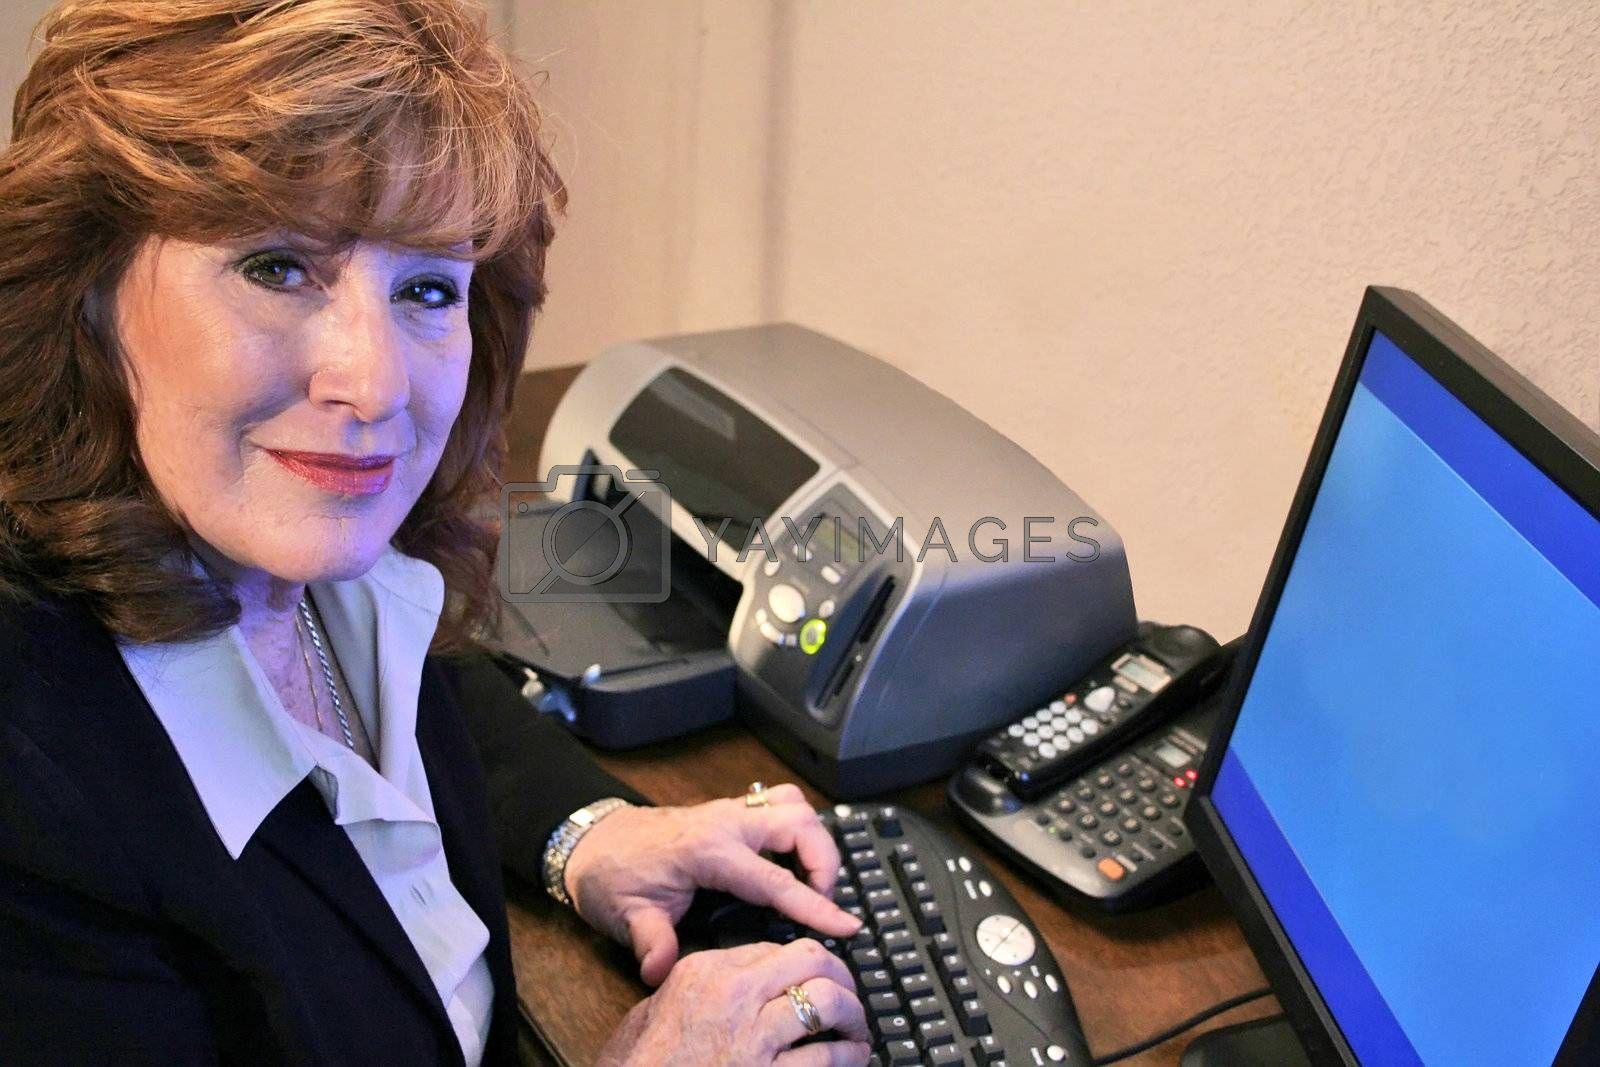 Executive Woman working on computer